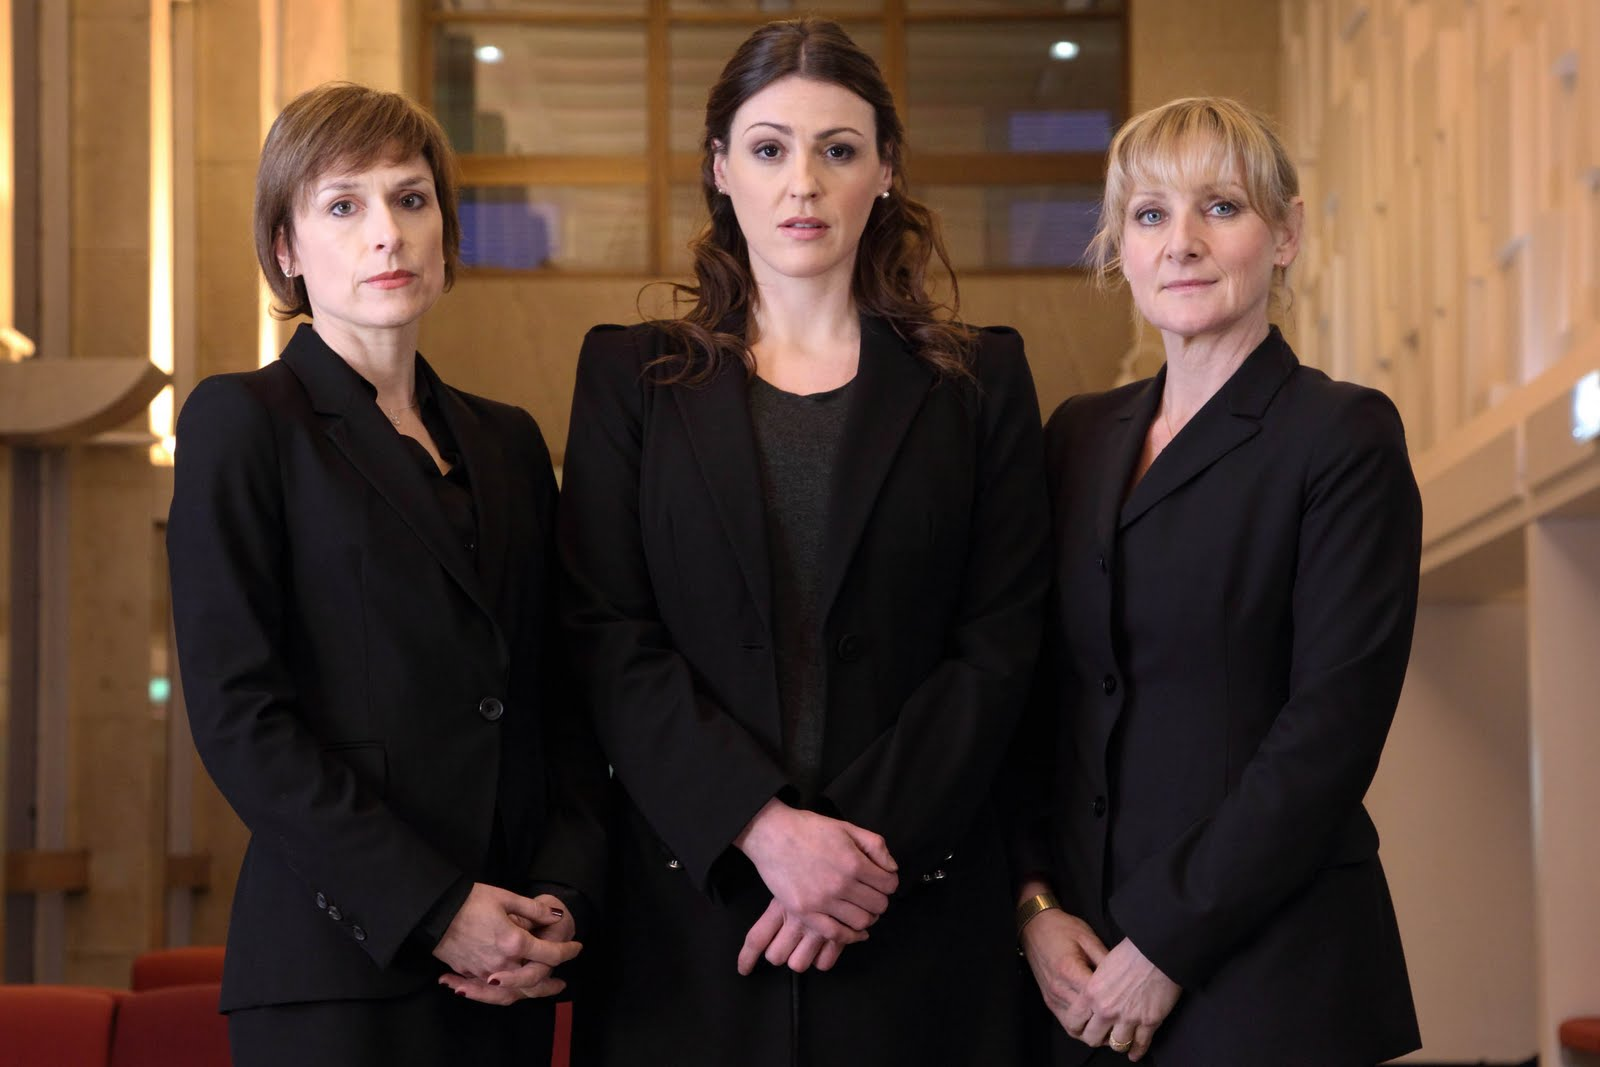 Crime time preview scott and bailey with suranne jones and lesley